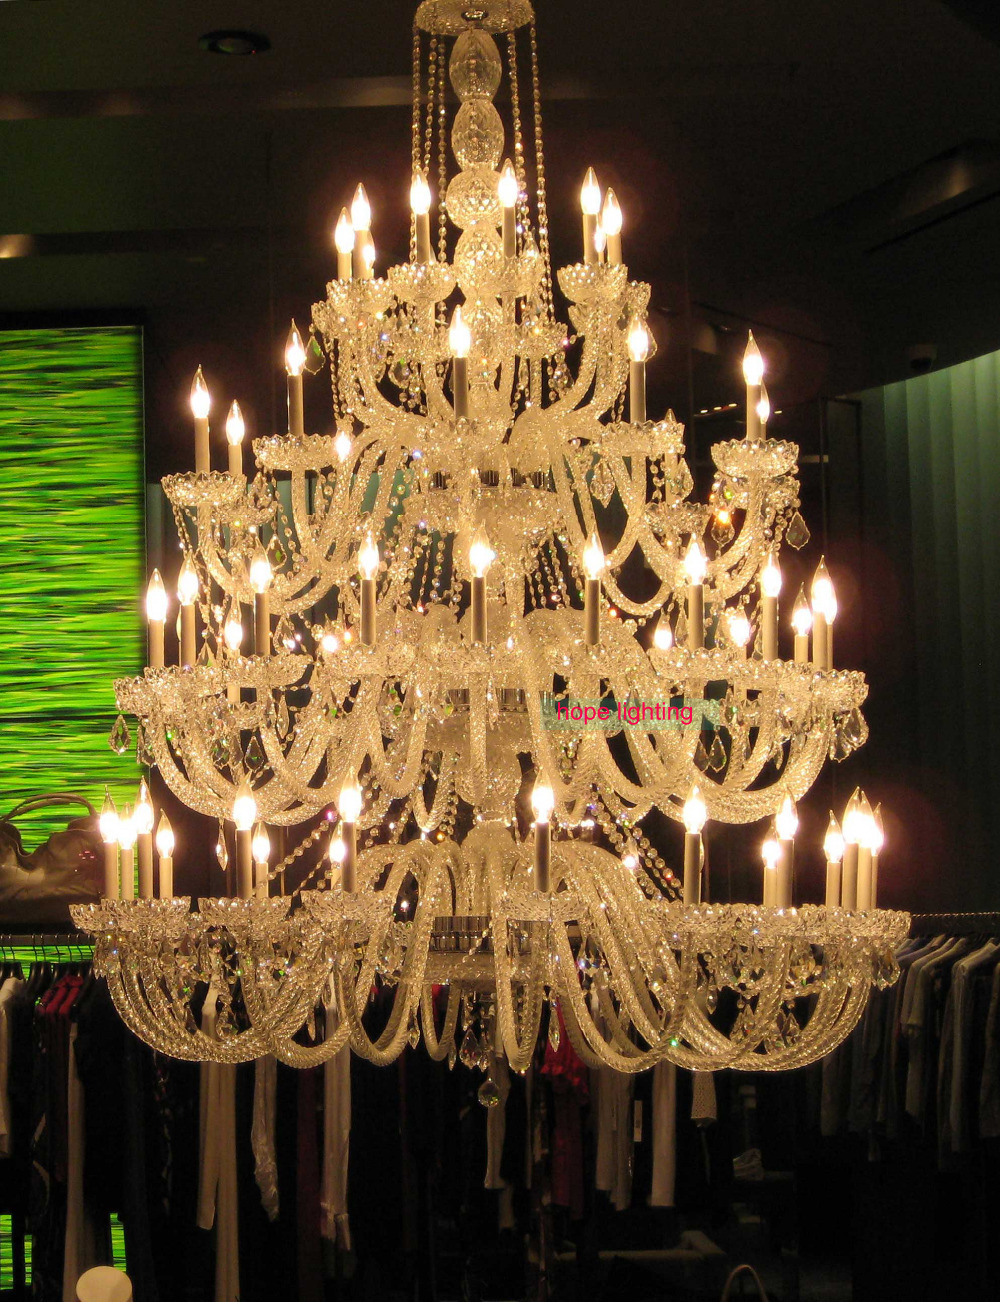 Buy Bohemian Chandelier And Get Free Shipping On AliExpress